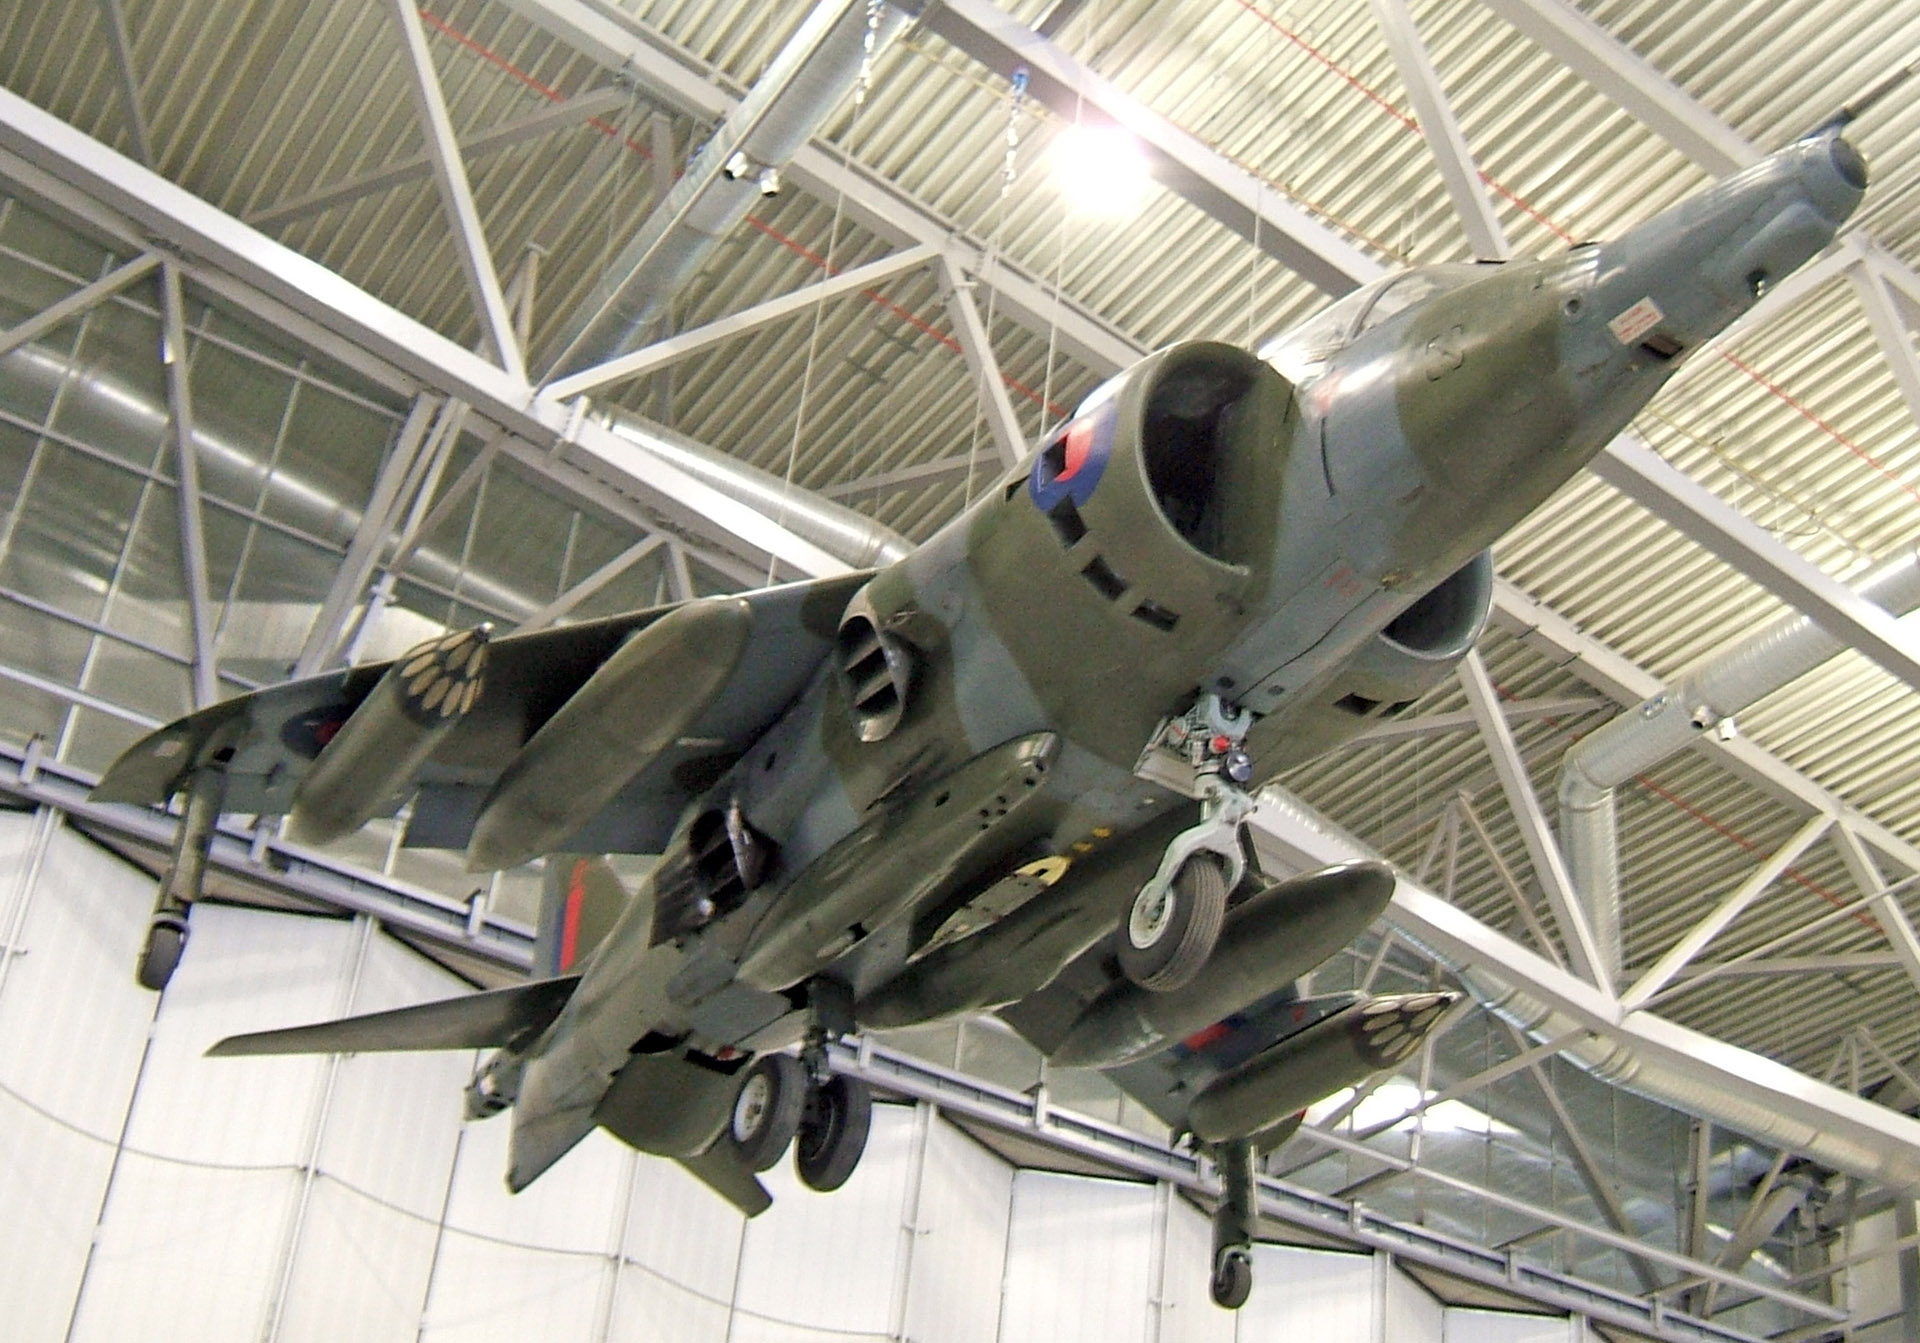 duxford Harrier jump jet suspended ceiling